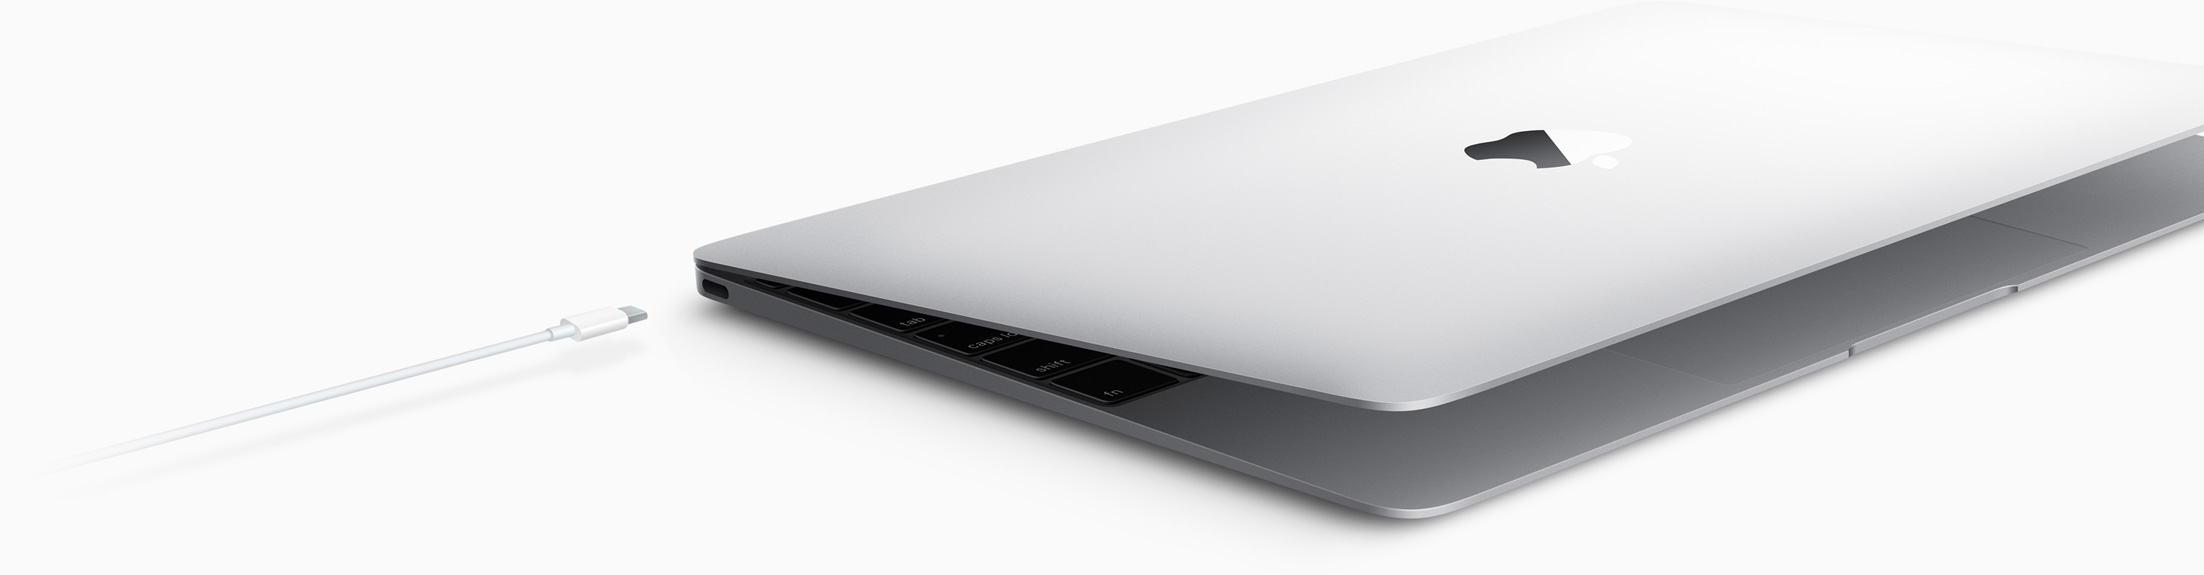 MacBook | iStore New Jersey,New York &Parsippany| All MacBook Repairs